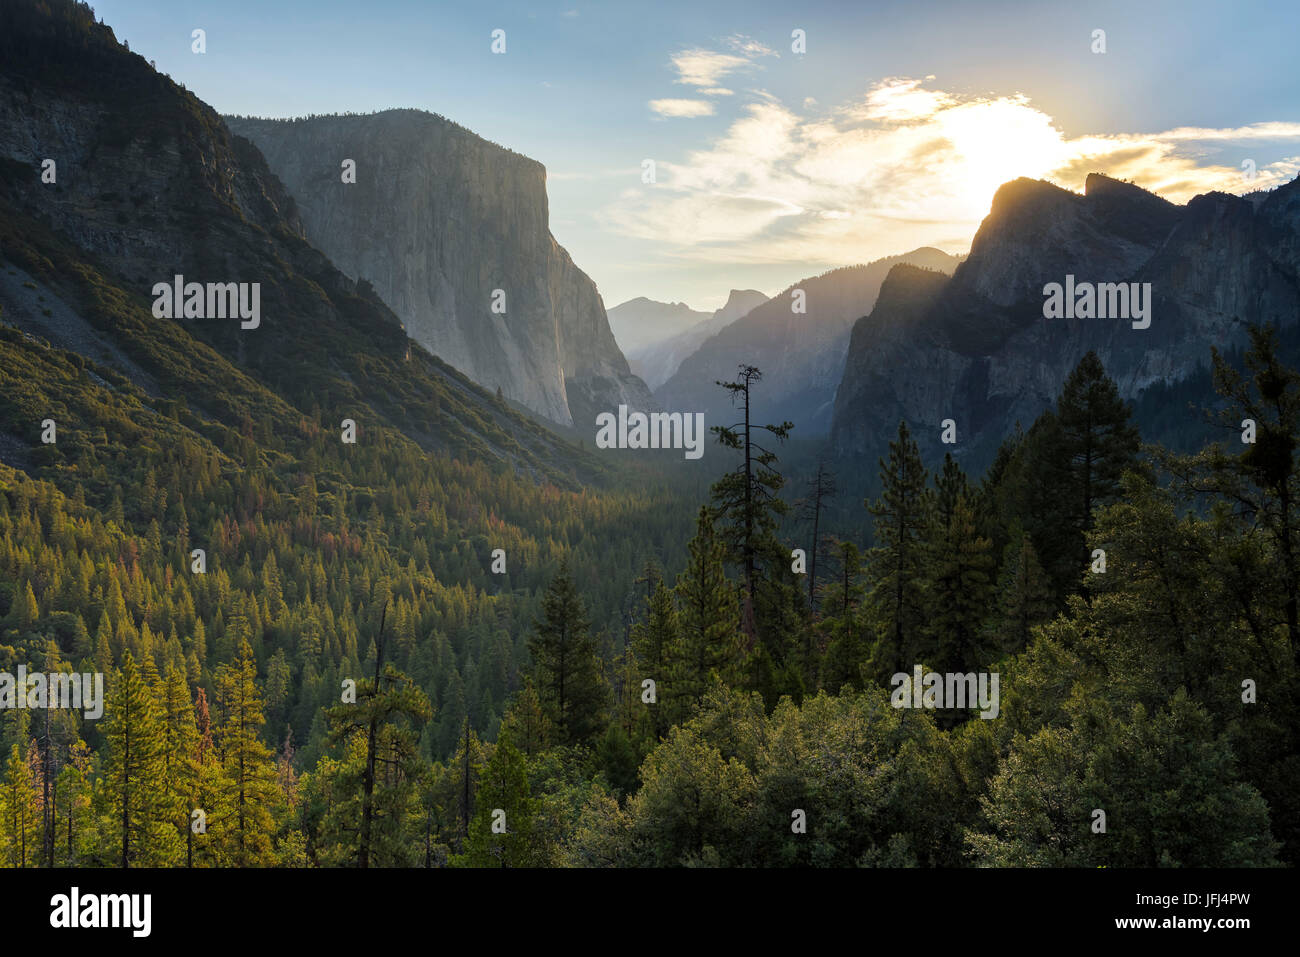 View in the Yosemite Valley, the USA, California Stock Photo